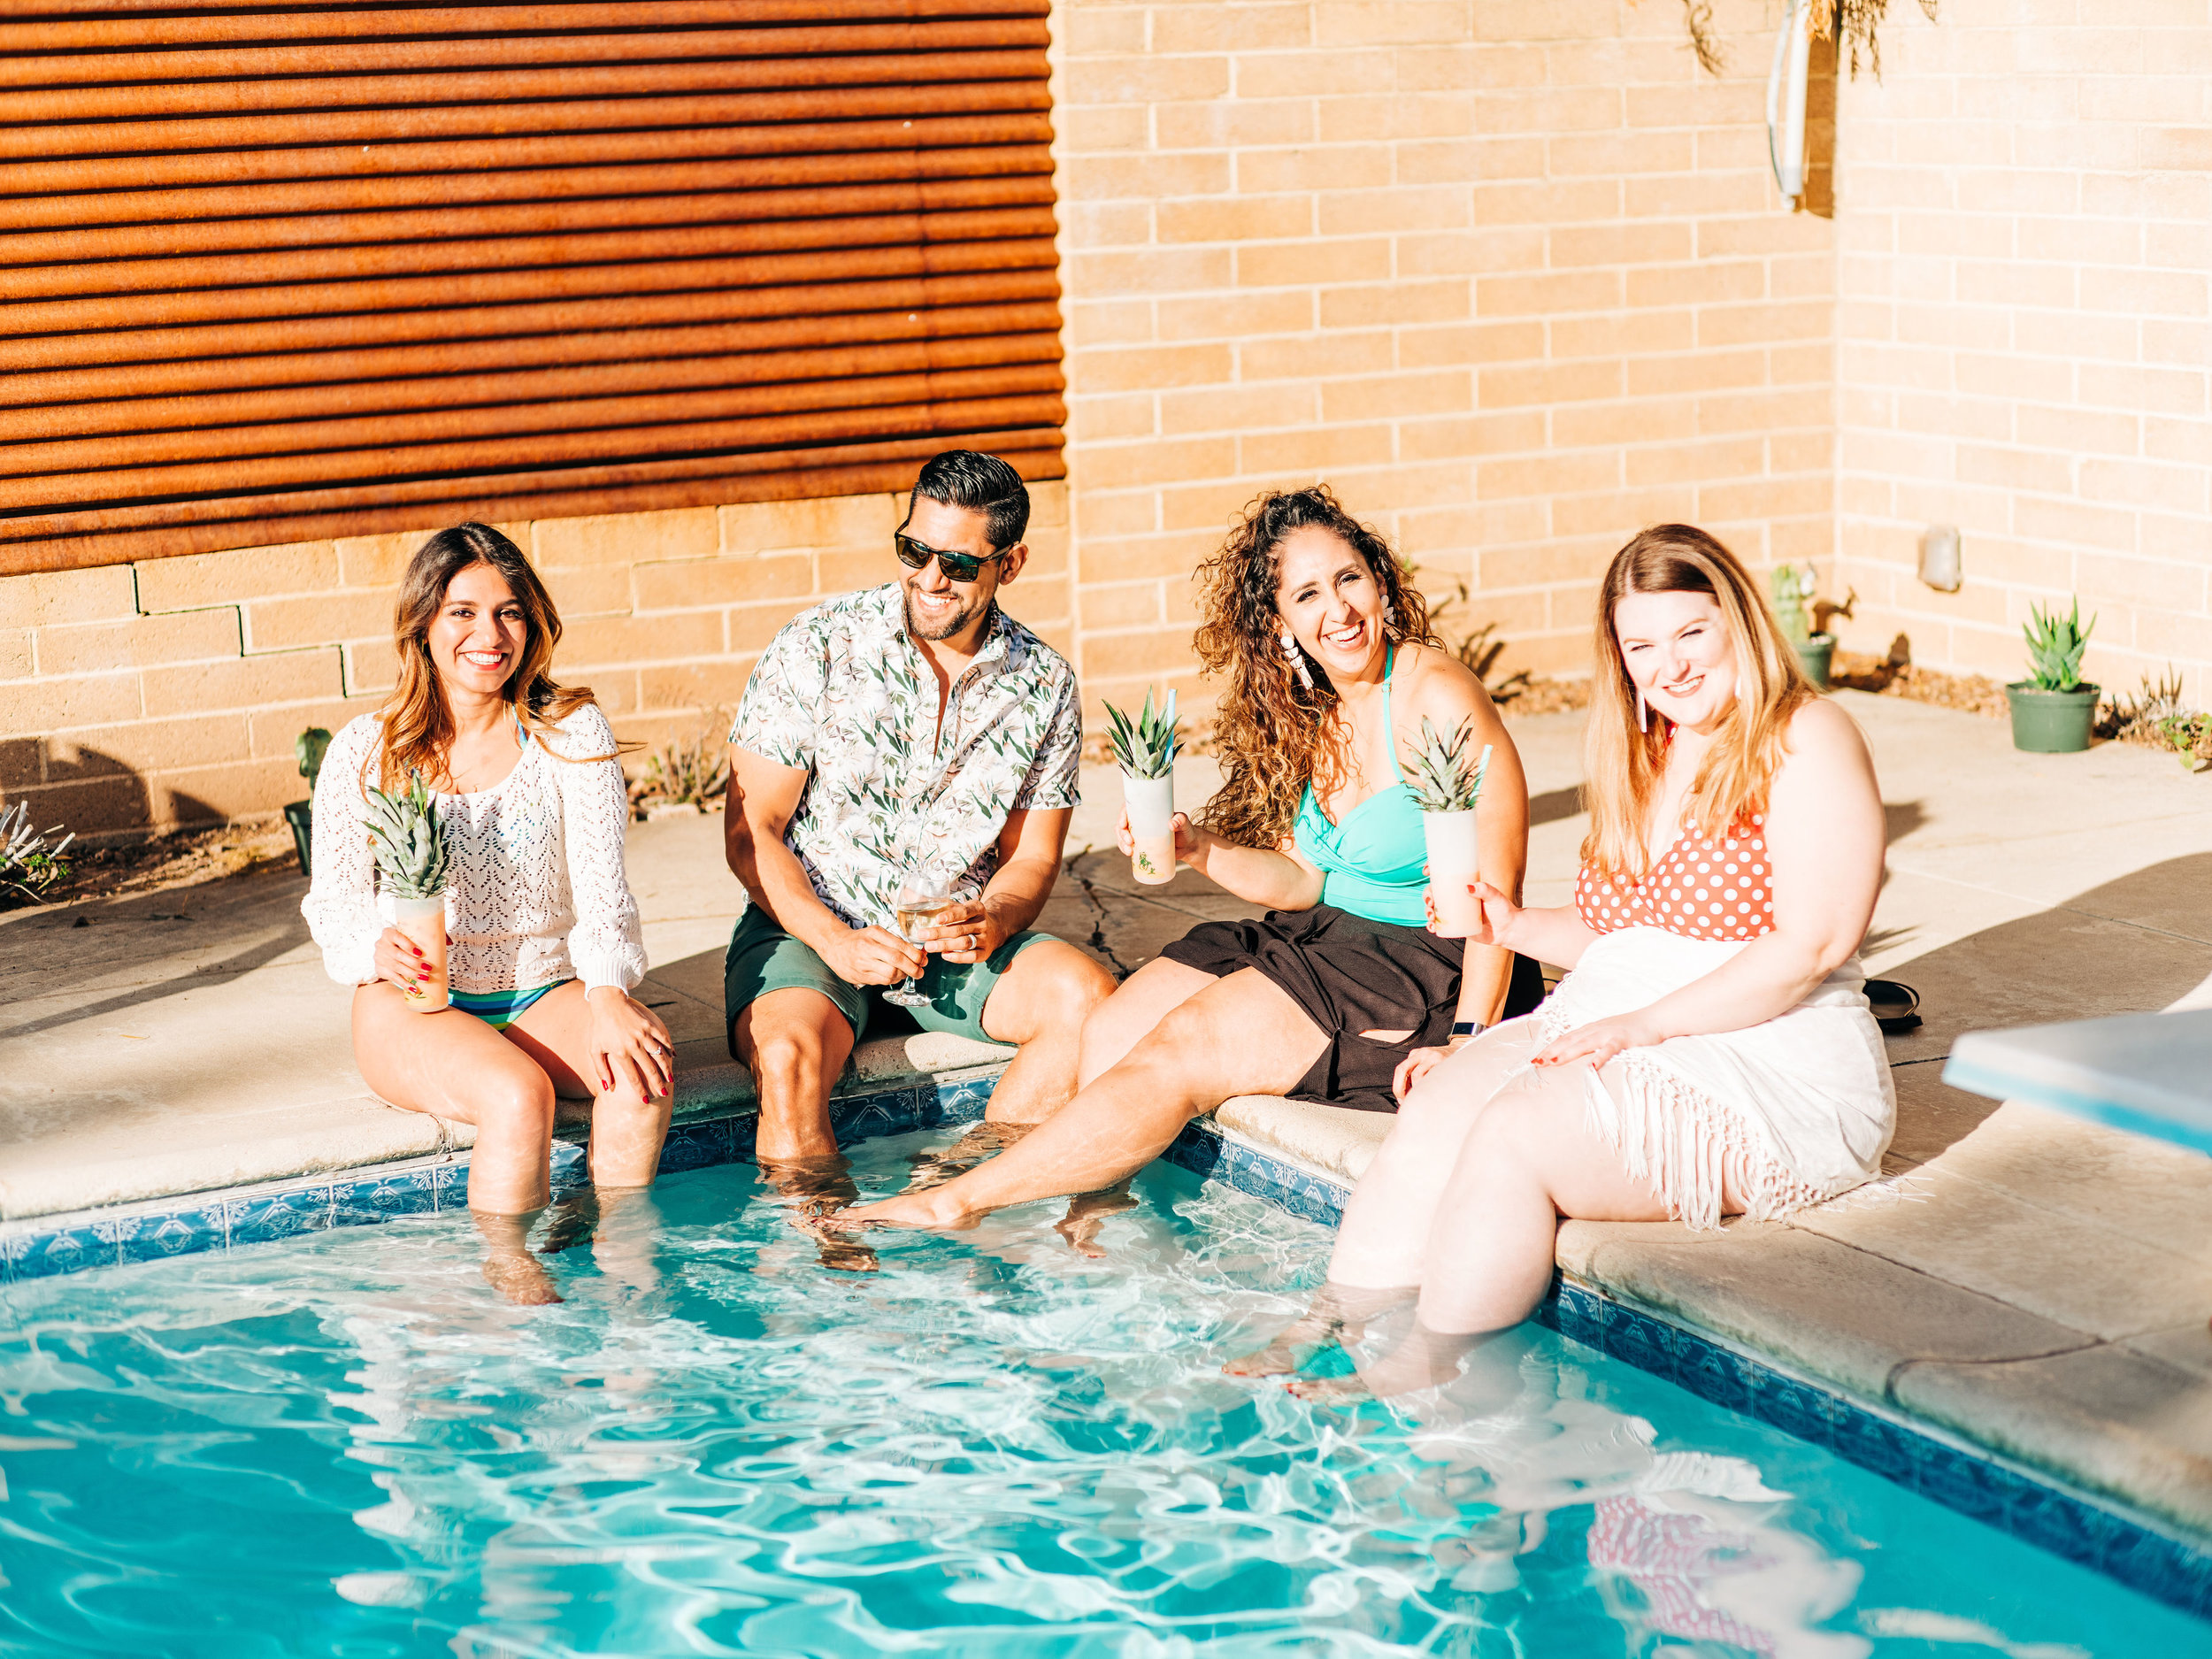 Andy-Shepard-Photography-Tucson-Pool-Party-67.jpg